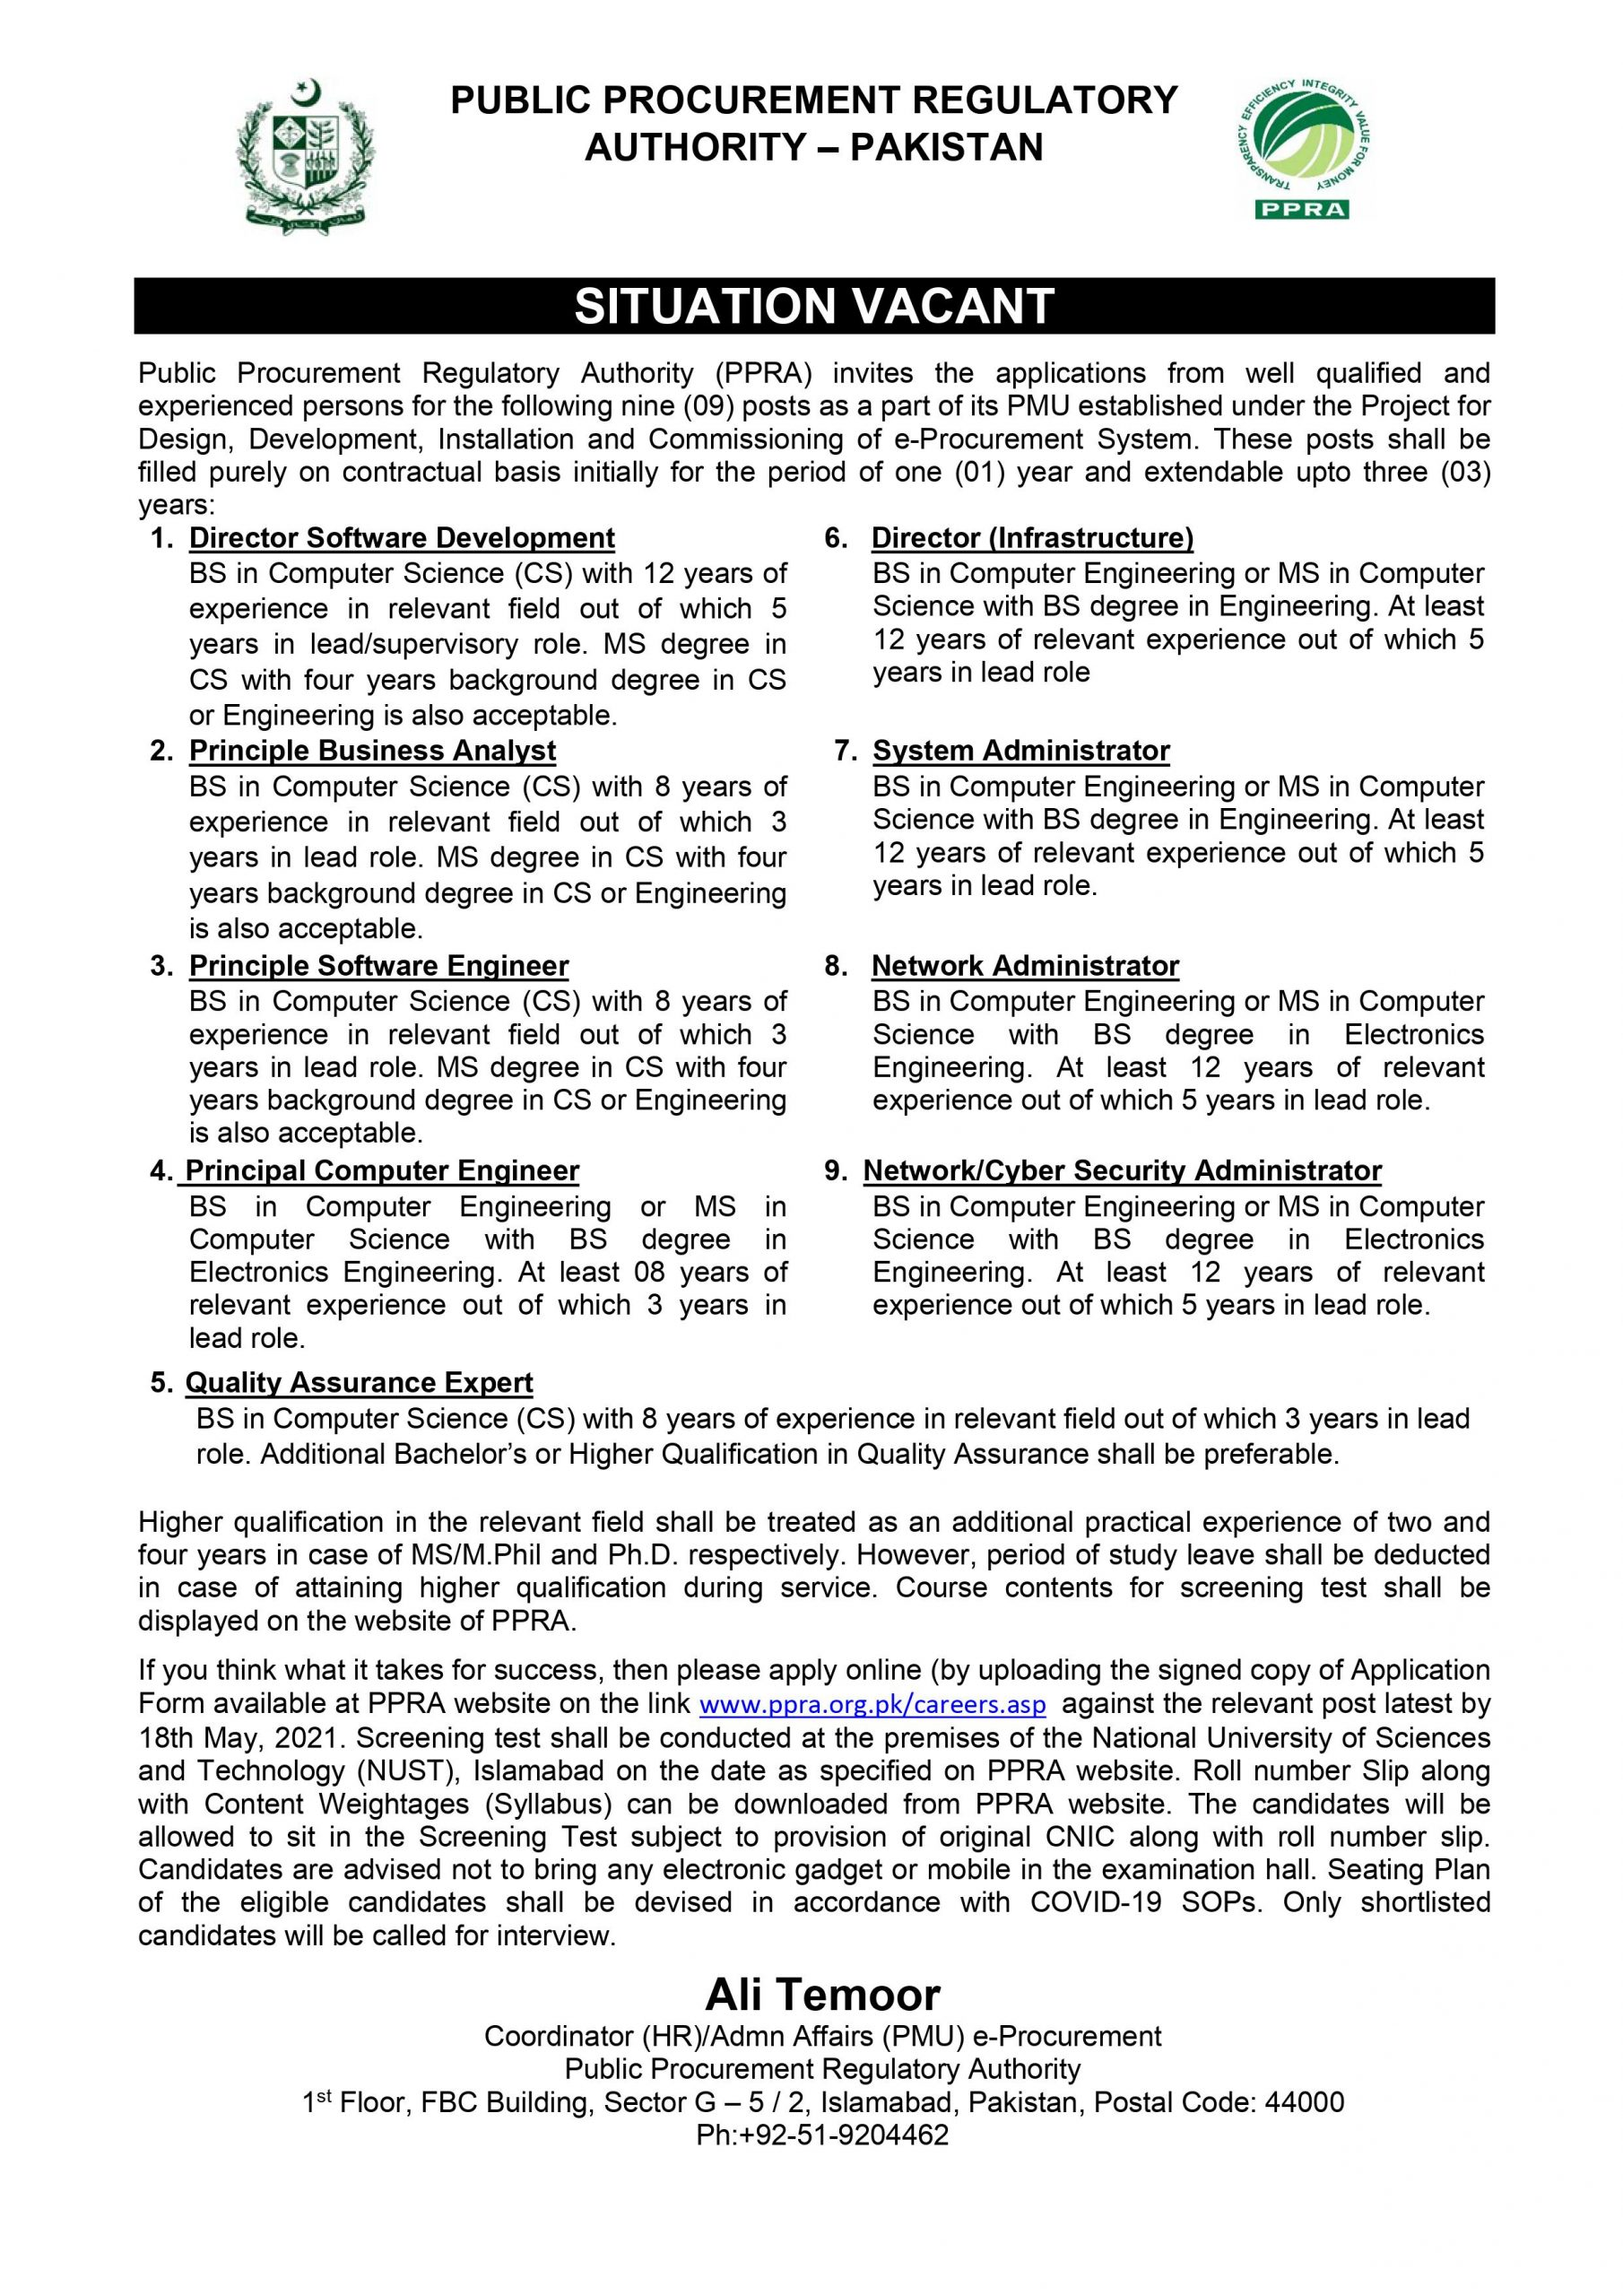 The current business extends are from PPRA Jobs 2021 Public Procurement Regulatory Authority Jobs Application Form Download Public Procurement Regulatory Authority | ppra.org.pk at this page of our website.